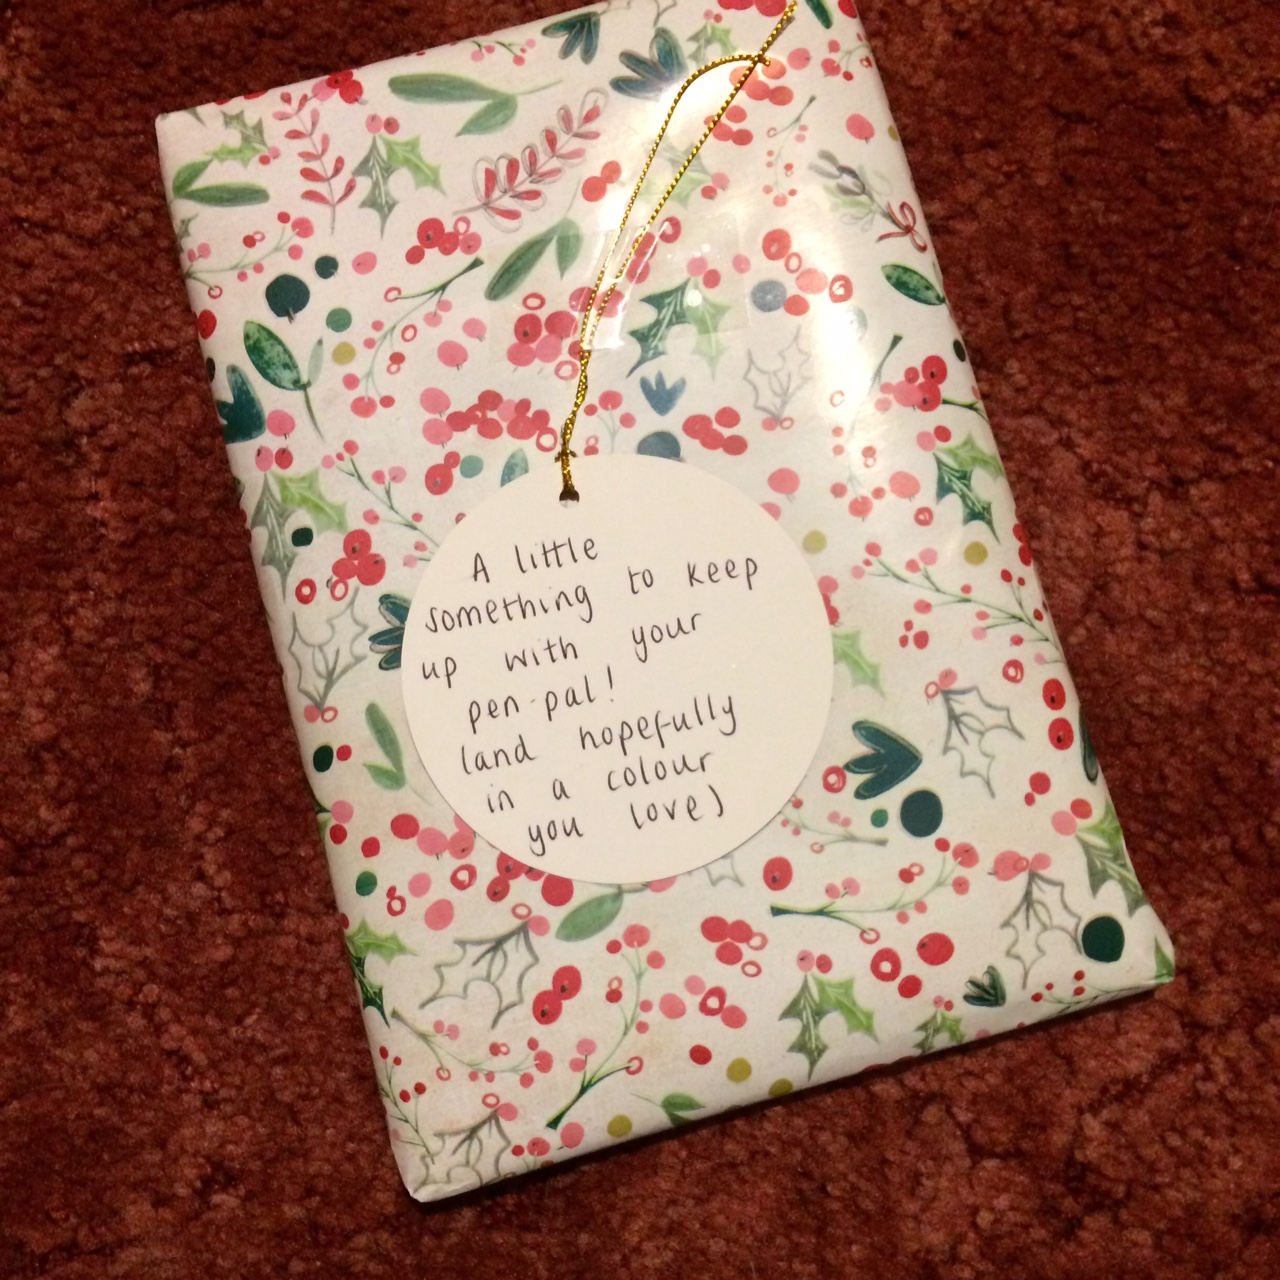 Wrapped present with a tag reading, A little something to keep up with your pen pal! (And hopefully in a colour you love)